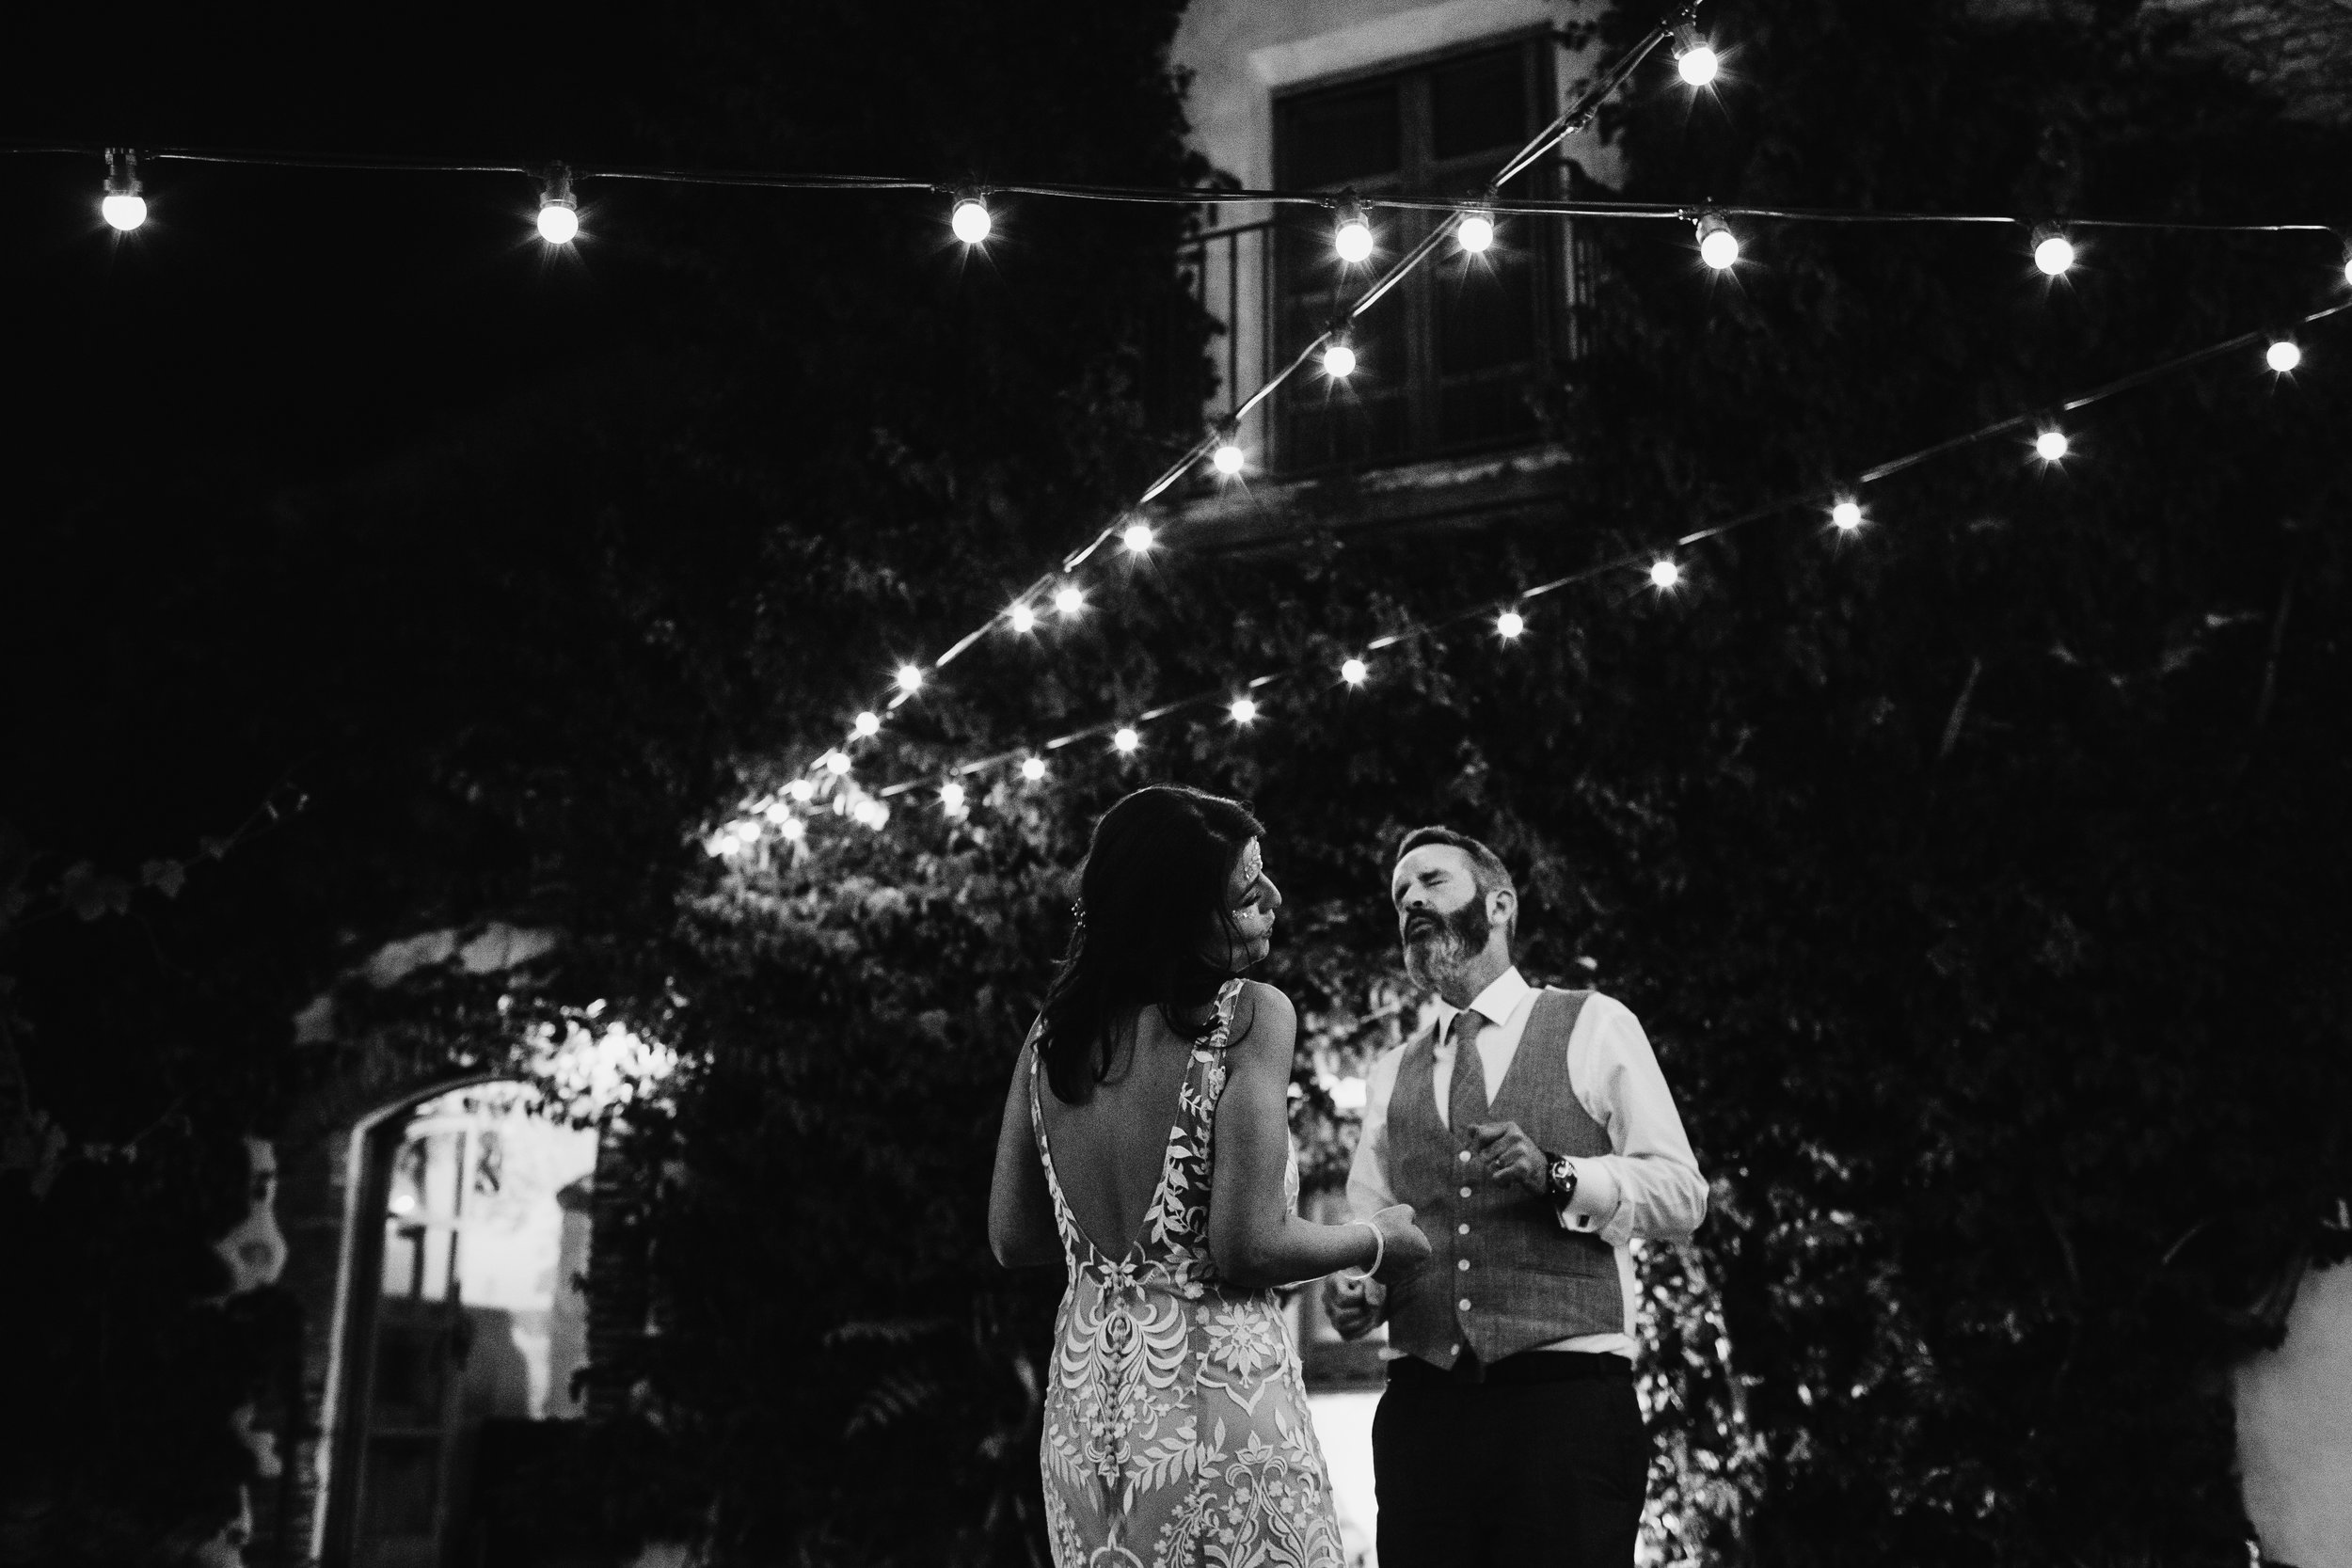 A bride and groom dancing on the night of their wedding at Almiral de la Font, Sant Pere de Ribes, Sitges, Barcelona by Jo Kemp Photography